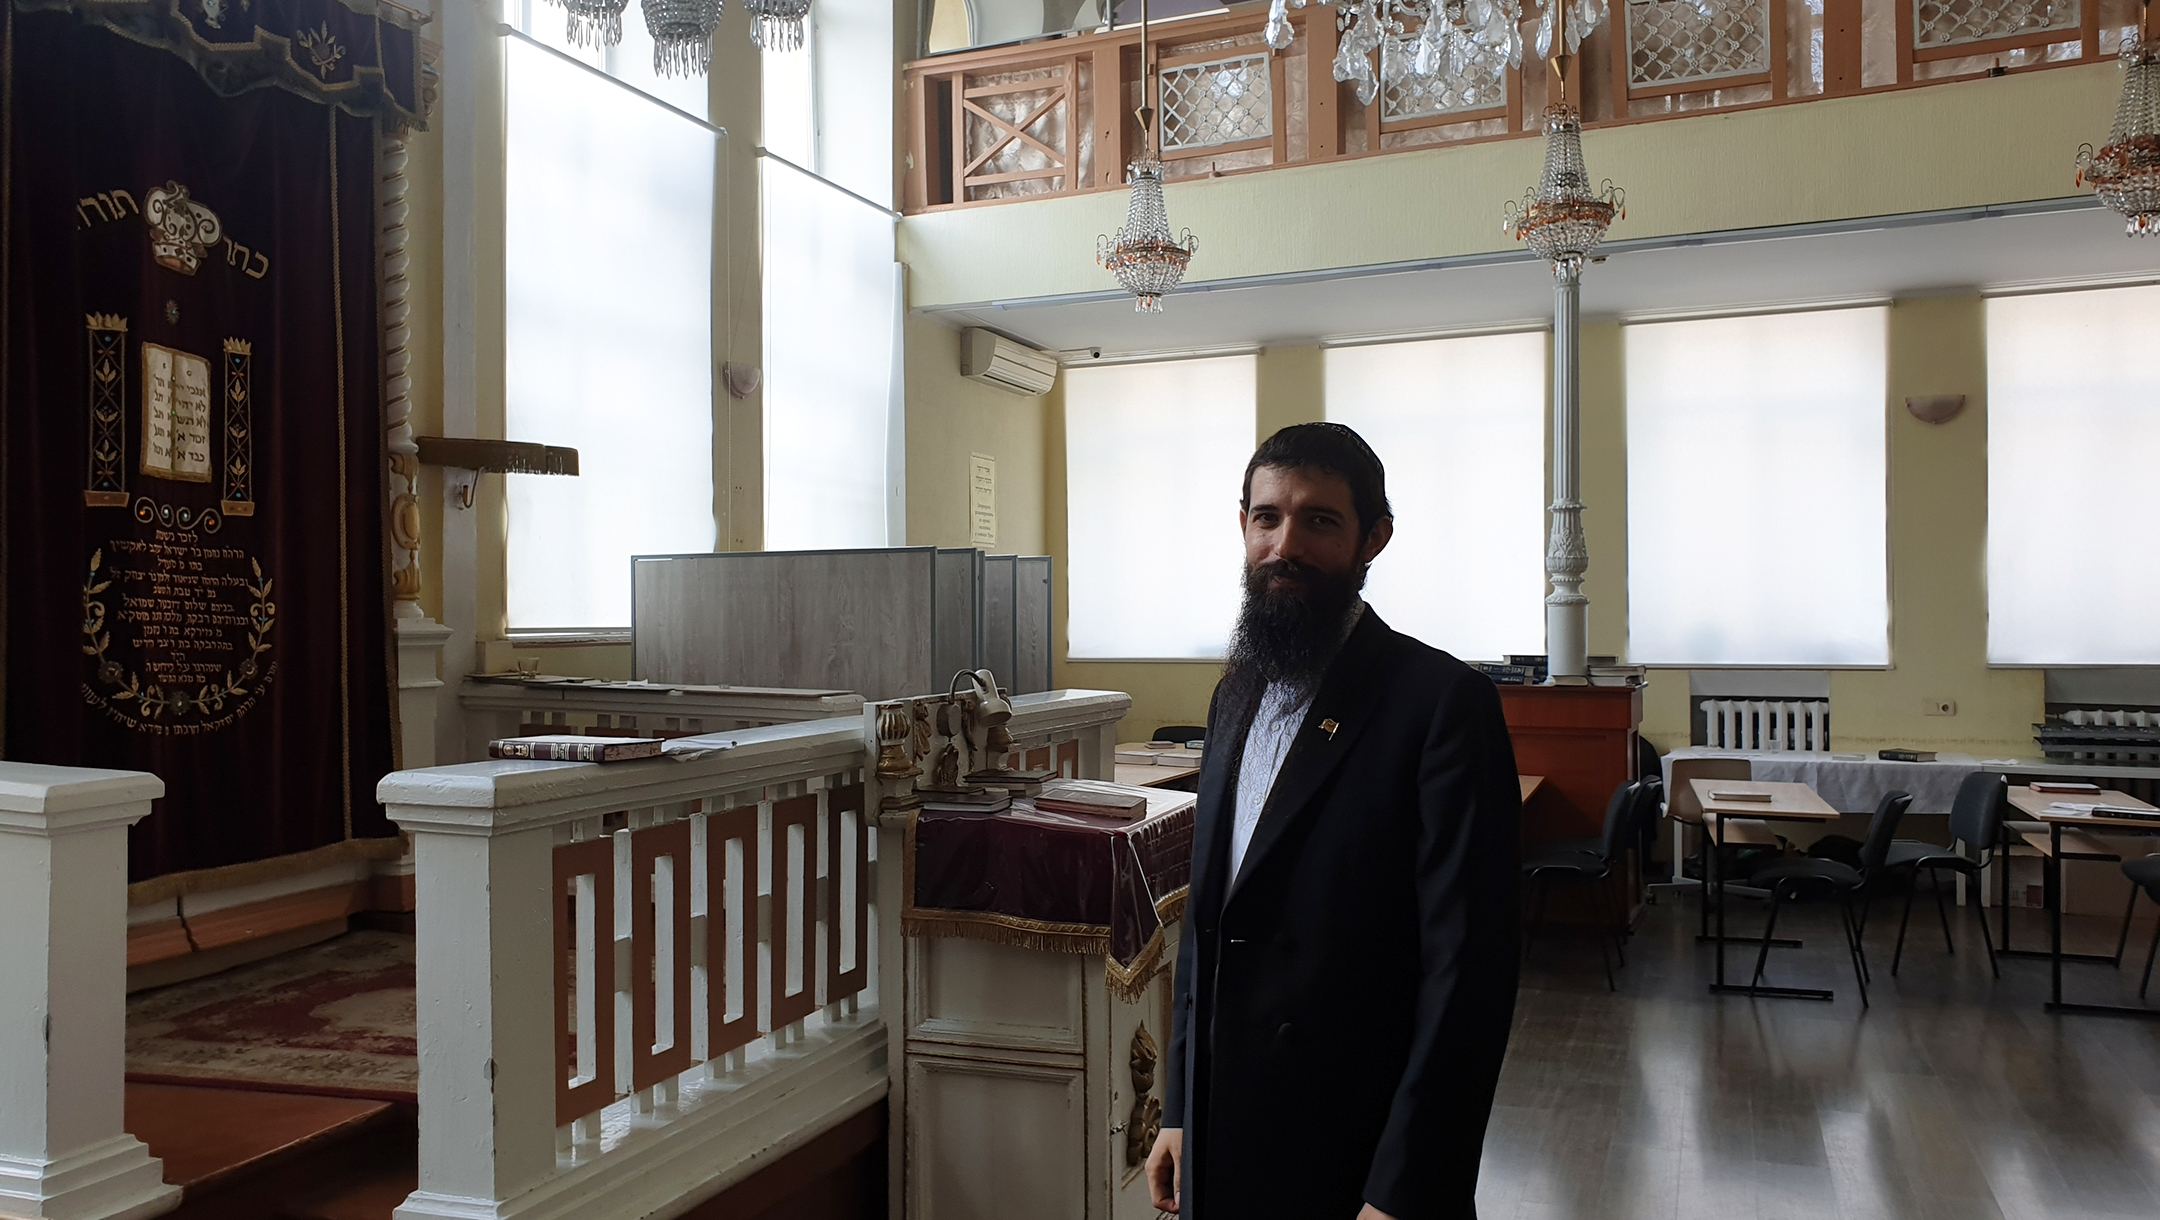 Rabbi Shmuel Zalmanov at the Alte Shul Synagogue on Chisinau, Moldova on Aug. 23, 2019. (Cnaan Liphshiz)